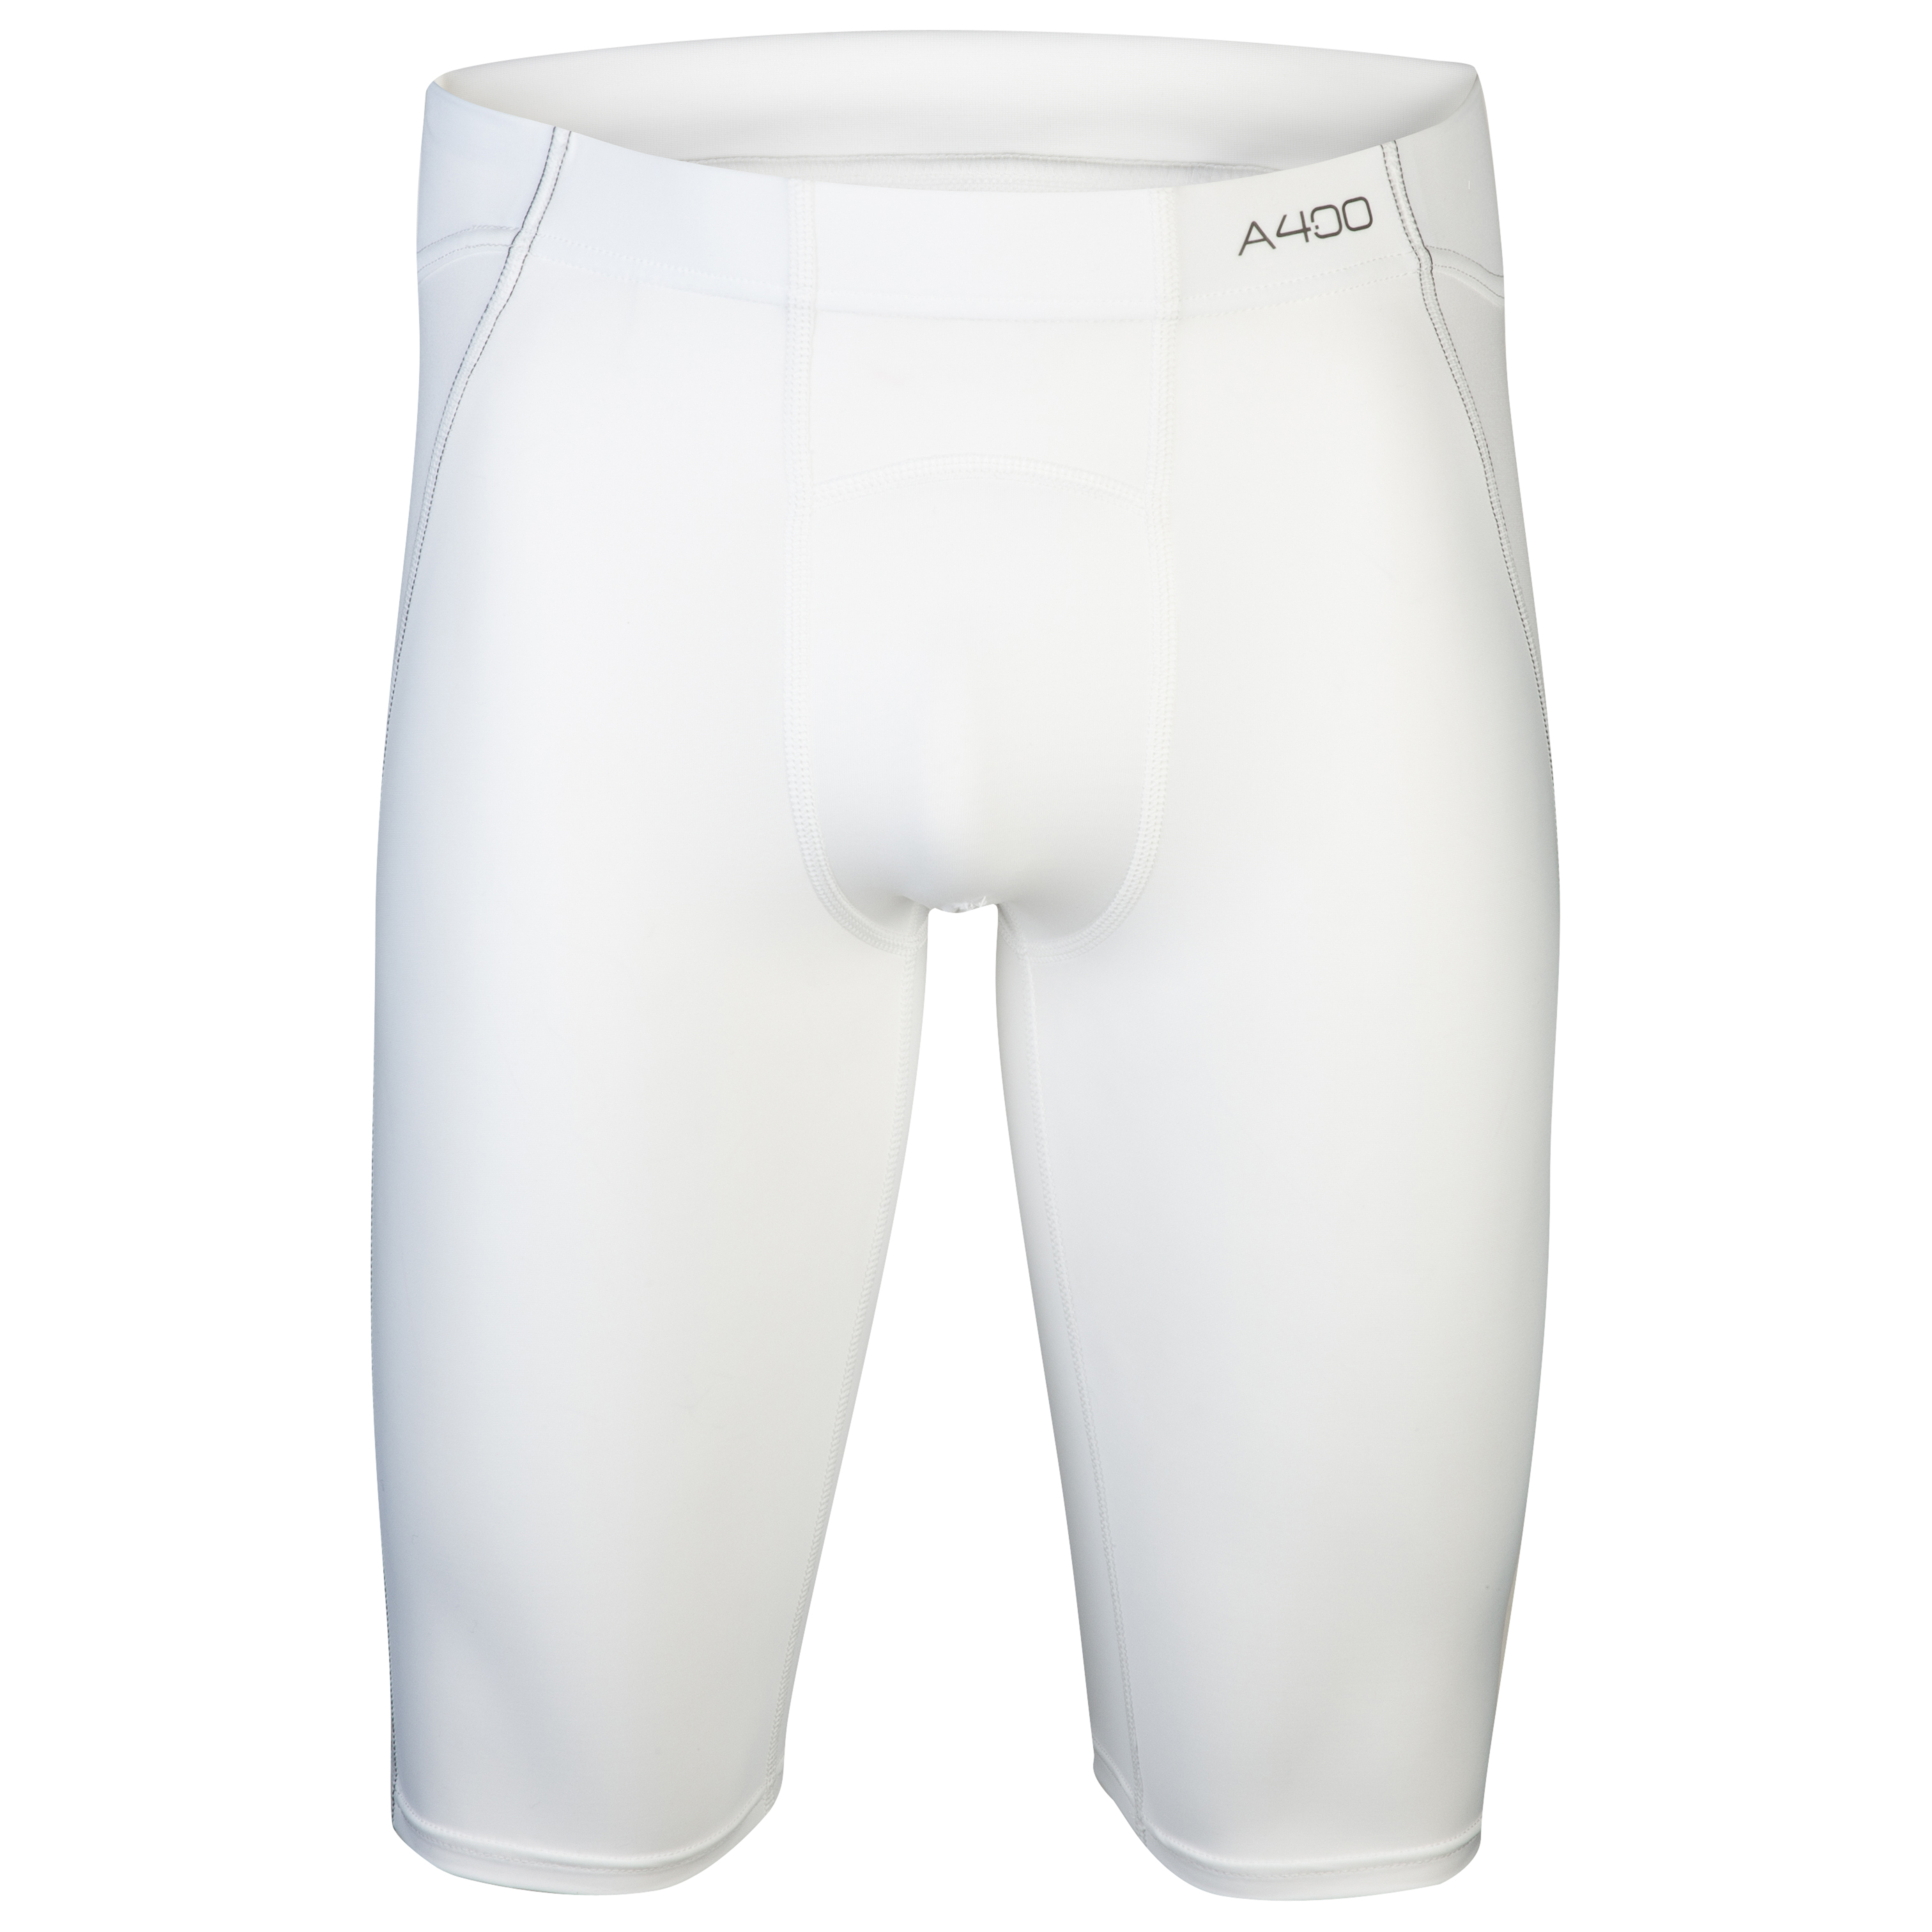 Skins A400 Active Half Tights - White